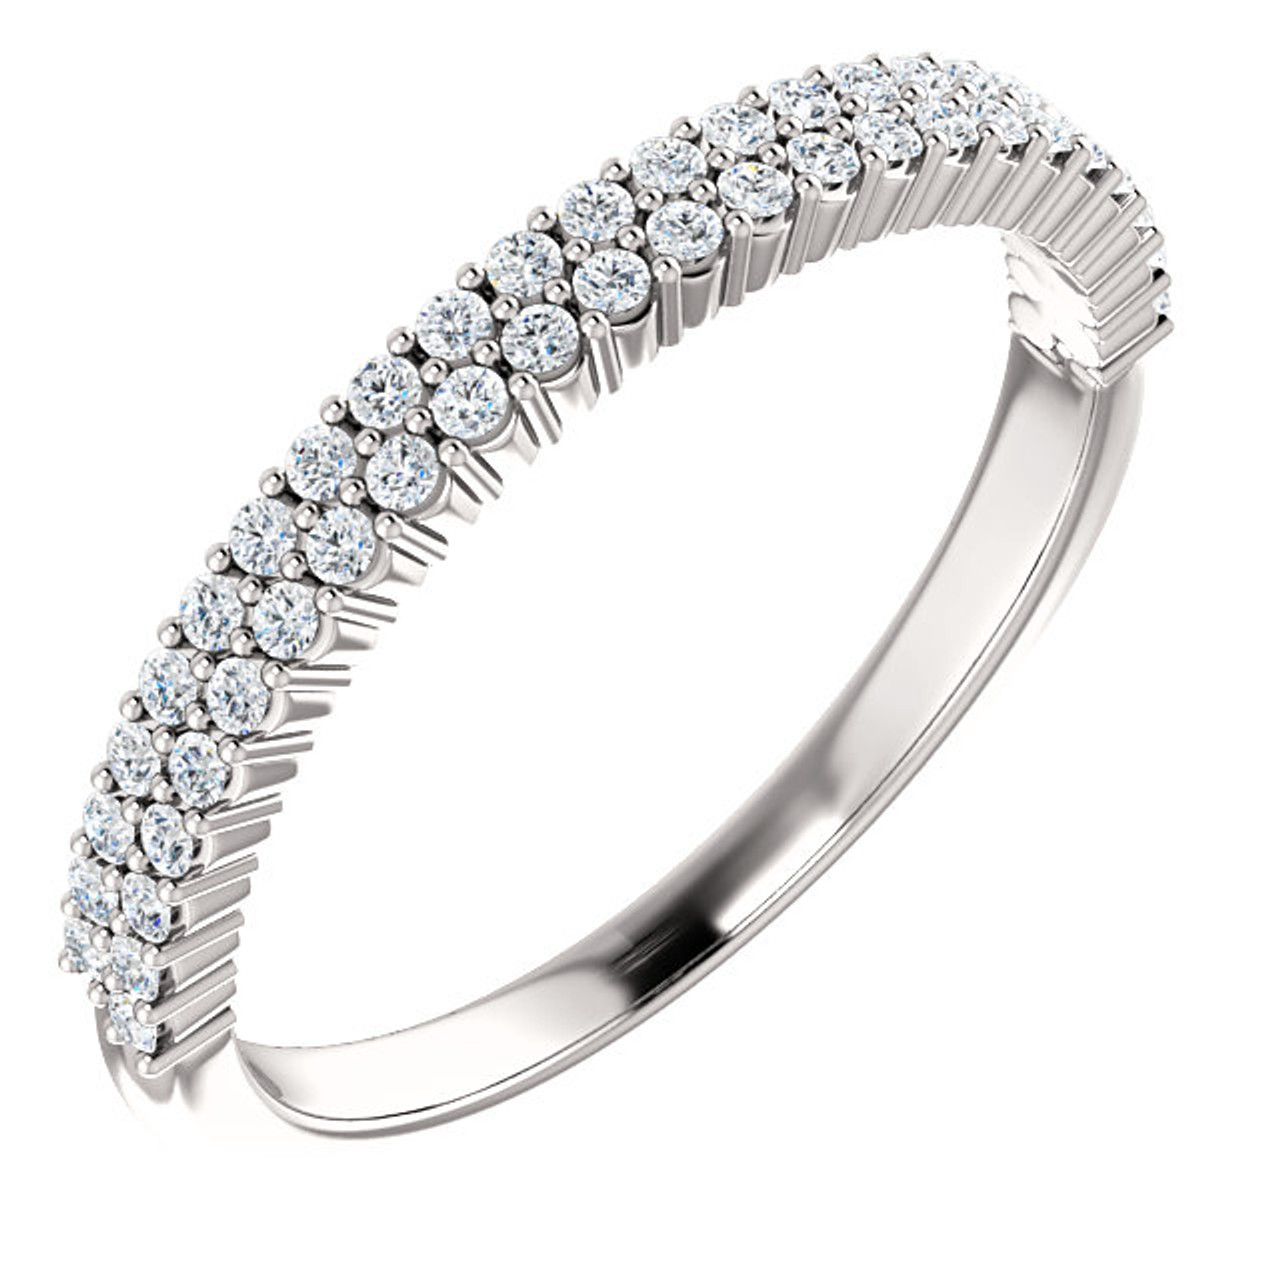 Set of 2 Silver CZ Diamond Wedding Engagement Band Rings Tiny stackable band Half eternity band